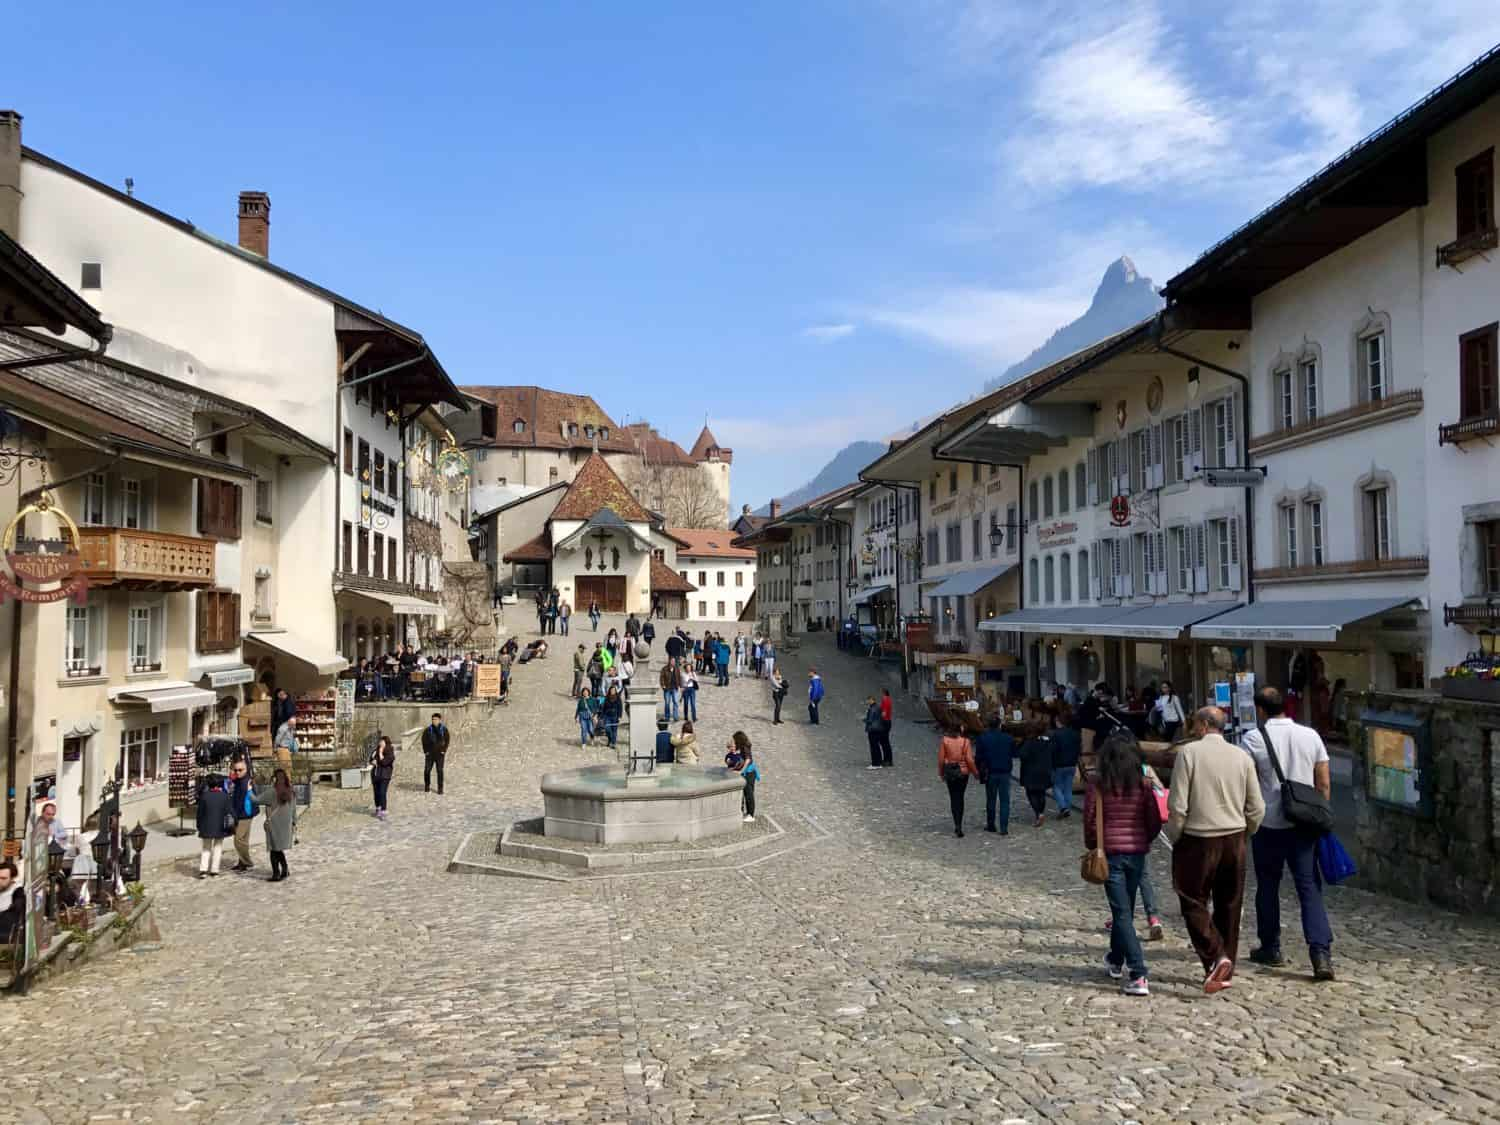 Eat some fondue in medieval Gruyeres - day trips from Geneva